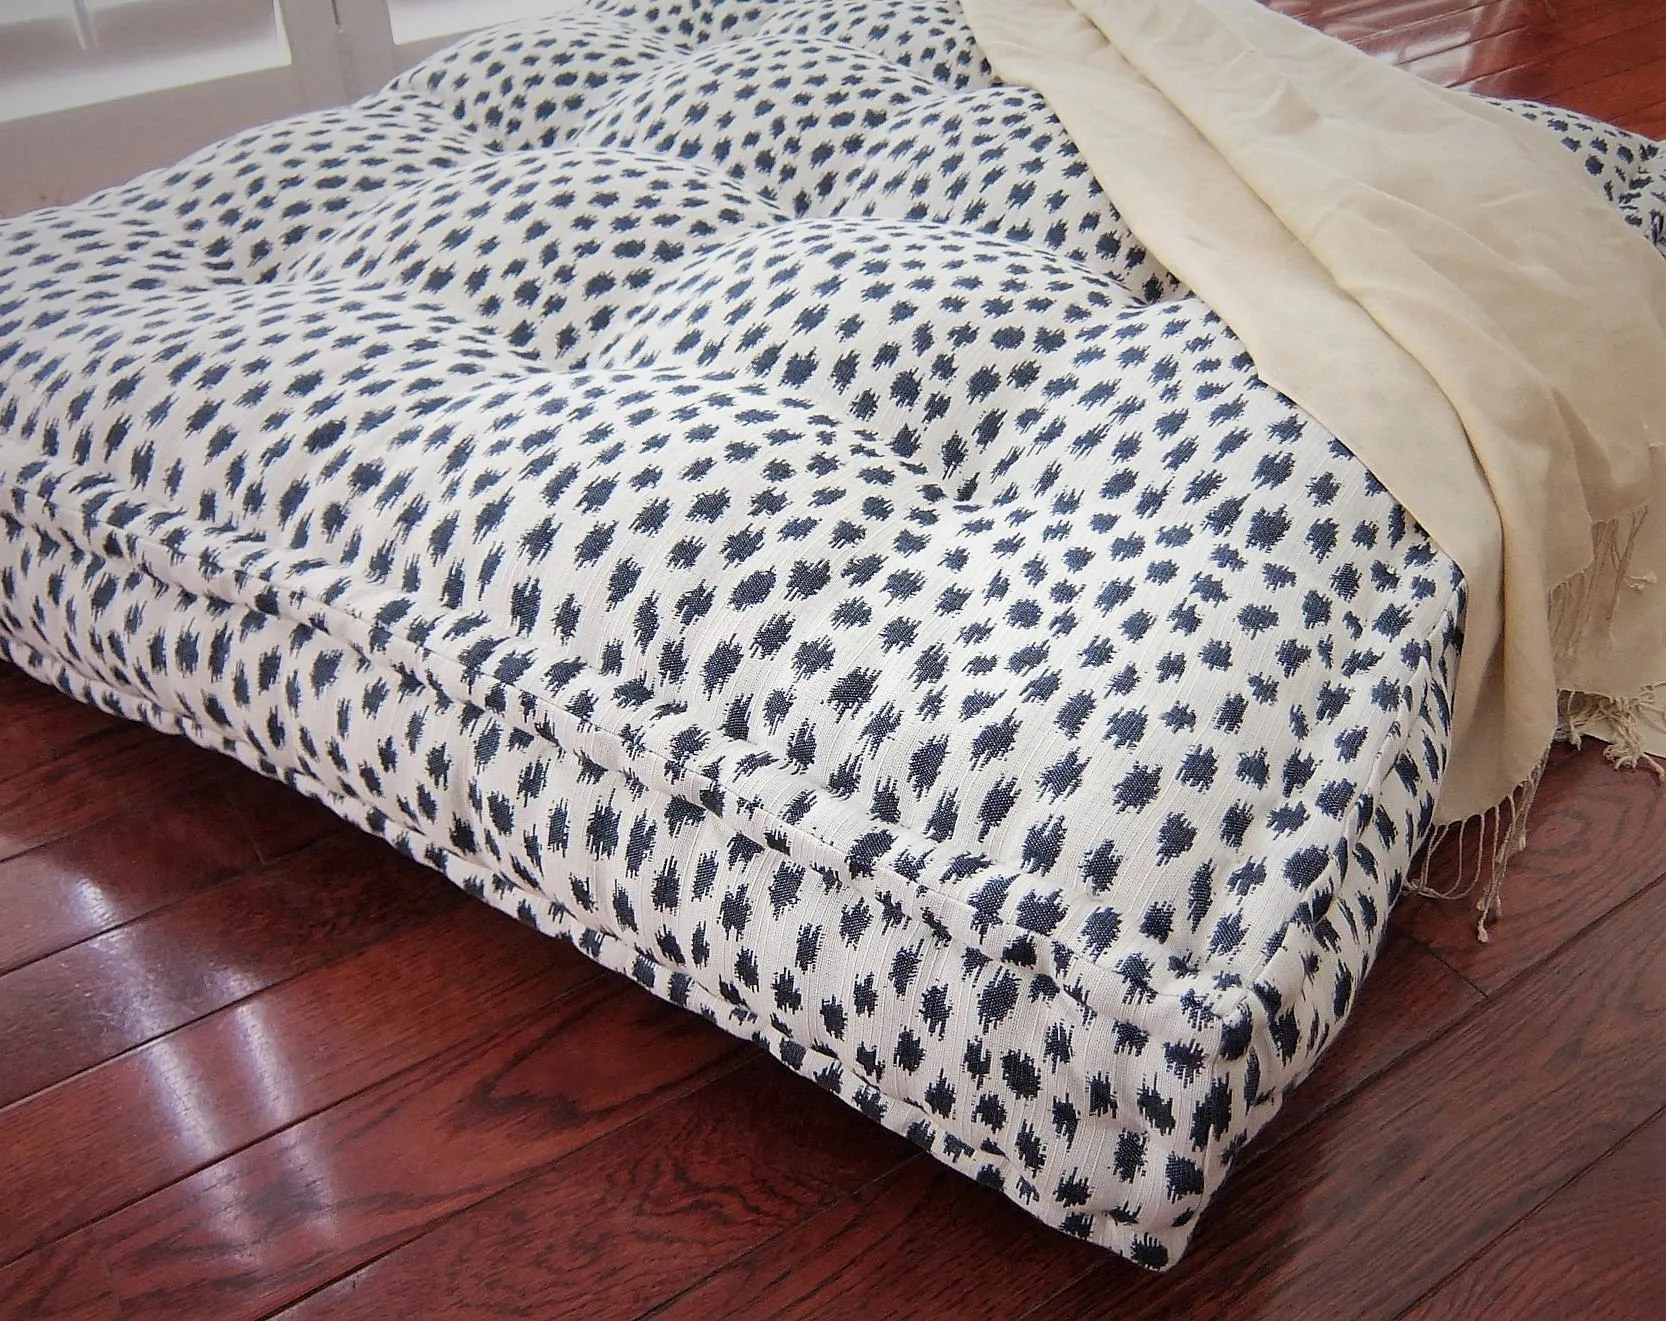 oversized floor cushion with french mattress quilting large floor pillow stuffed 36x36x6 floor pouf floor seating custom sizes available